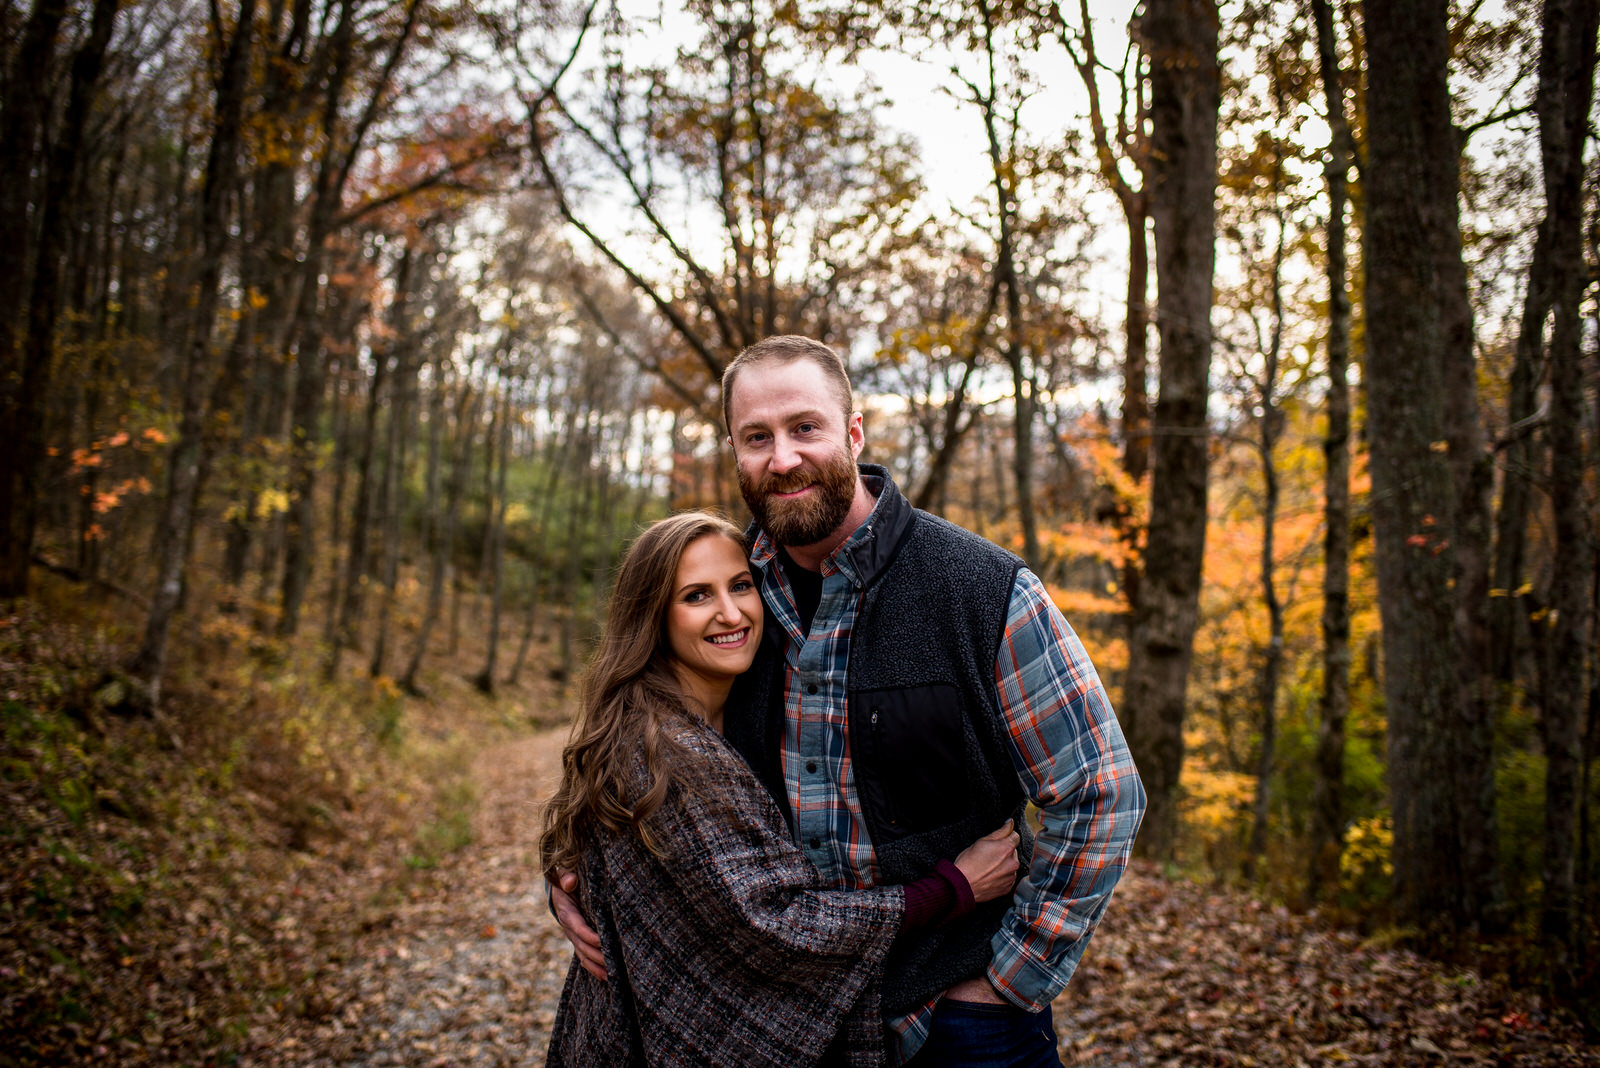 Bearwallow_Mountain_Engagement_Photos-3.jpg